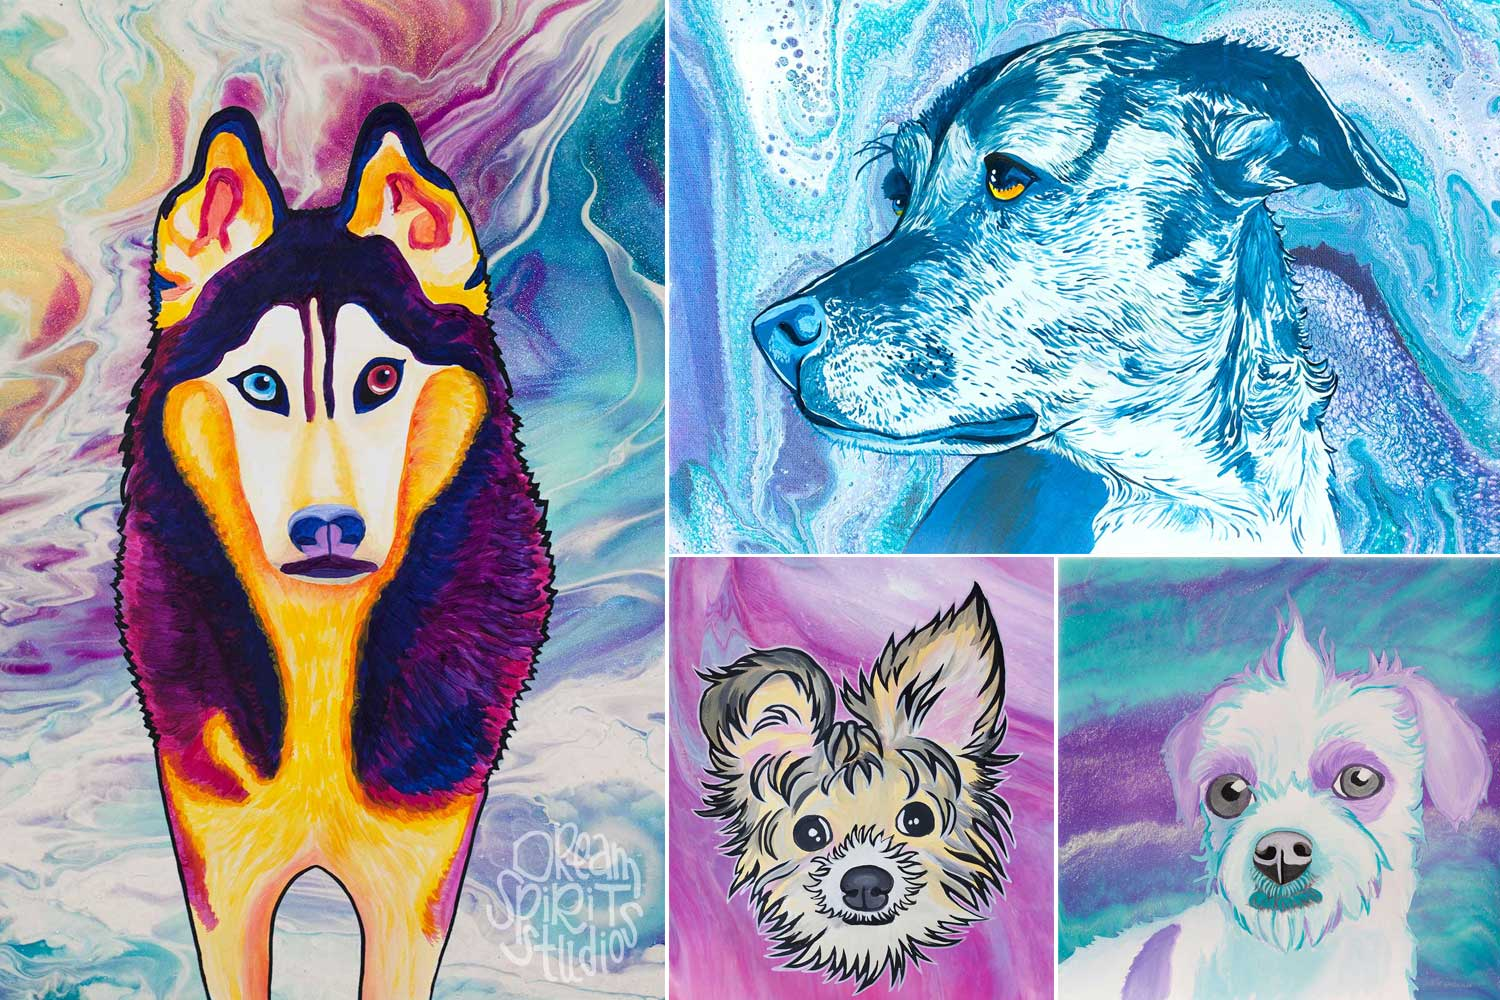 Medley of colorful, caricature-styled dog portrait paintings against acrylic poured backgrounds.